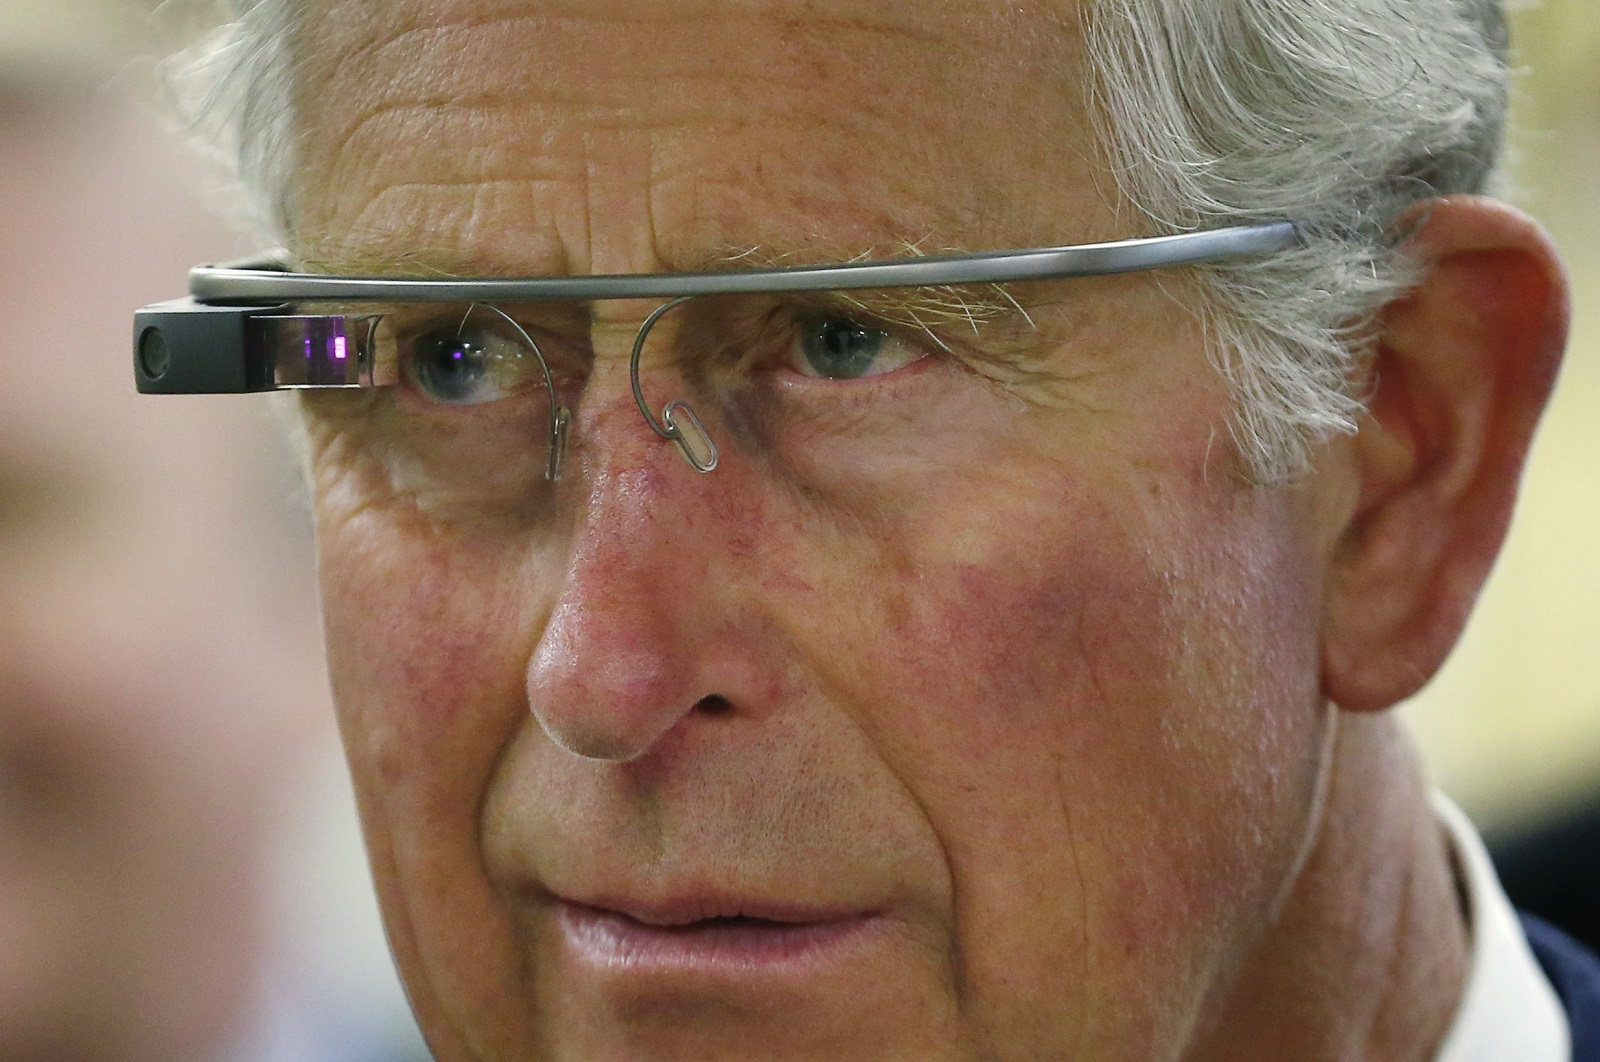 Whatever Happened to Google Glass?